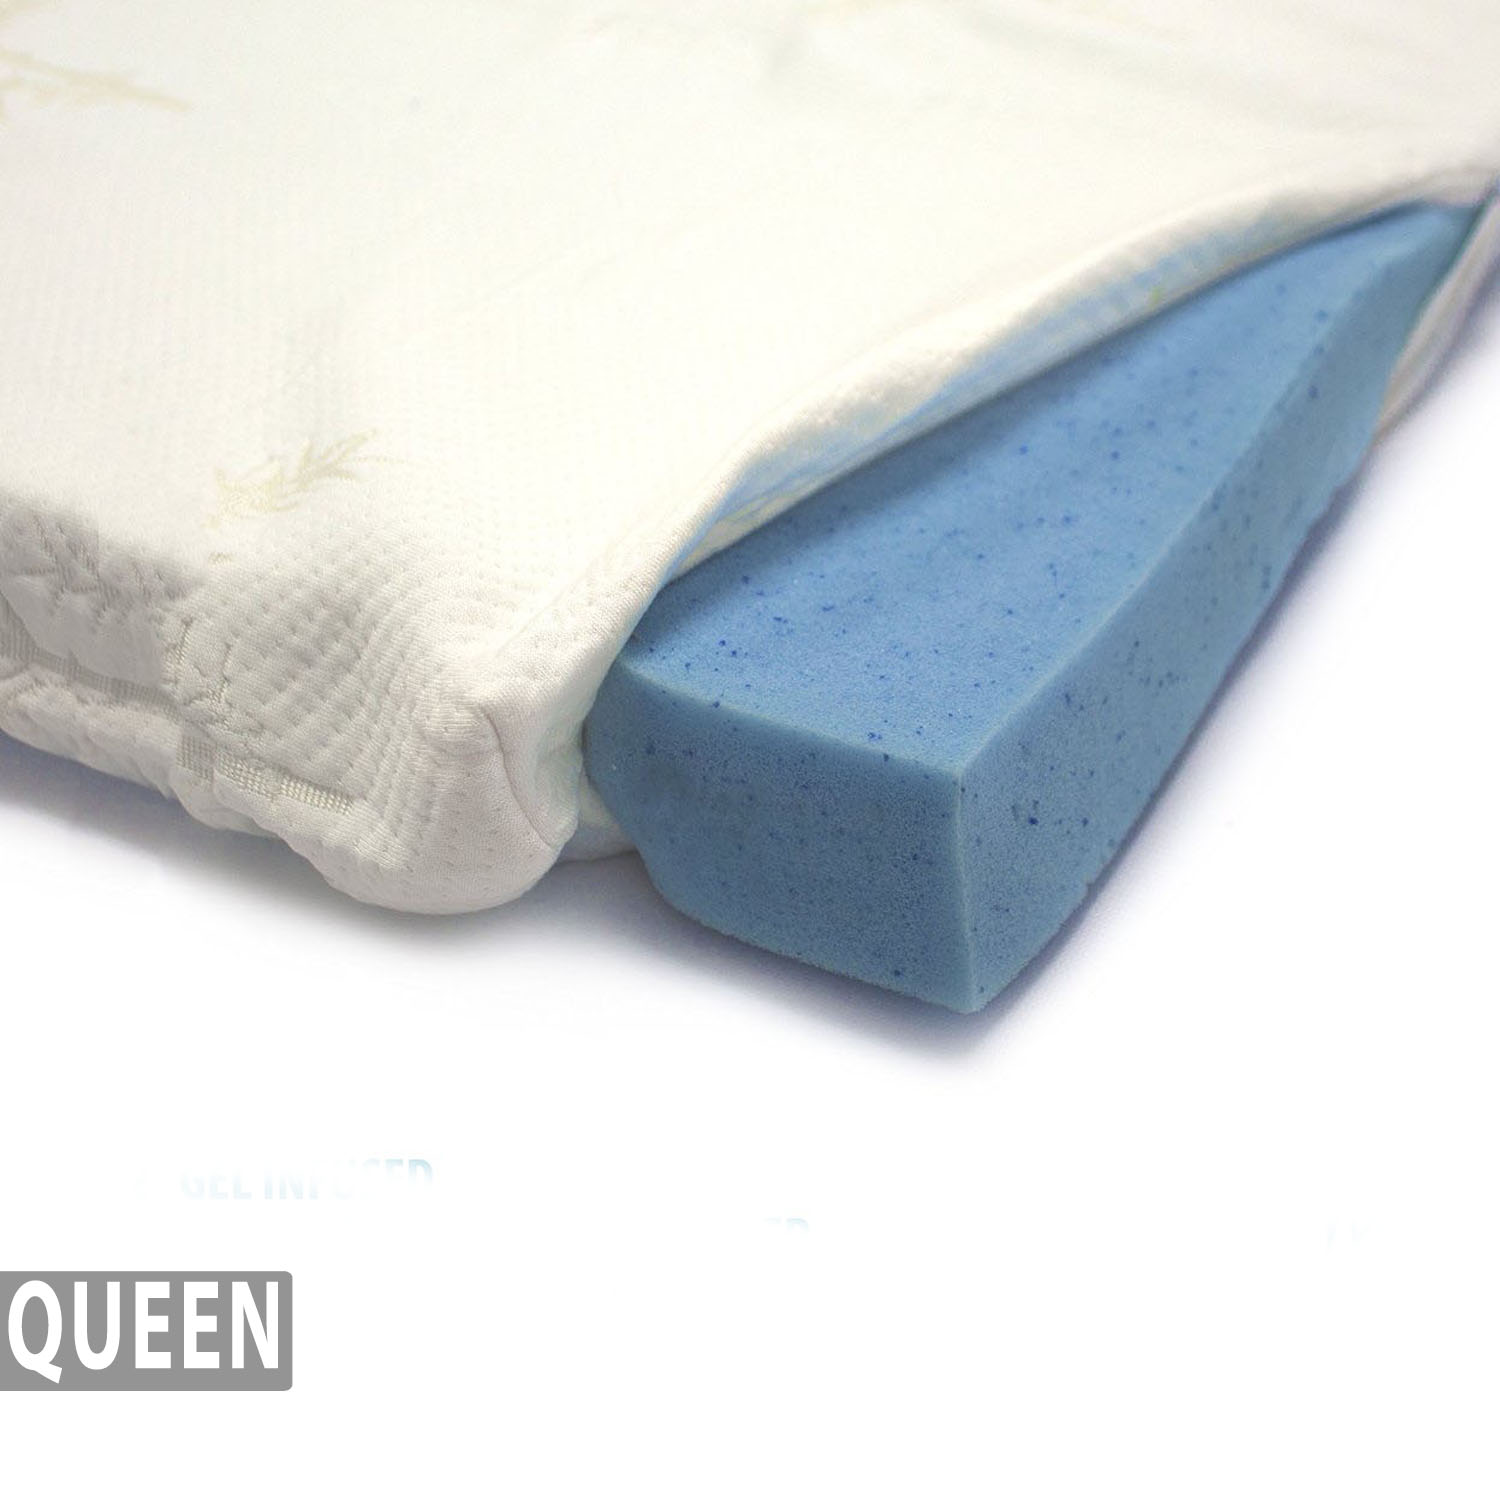 Gel Infused Memory Foam Mattress Topper Bamboo Cover Queen Milliard Bedding The Ultimate